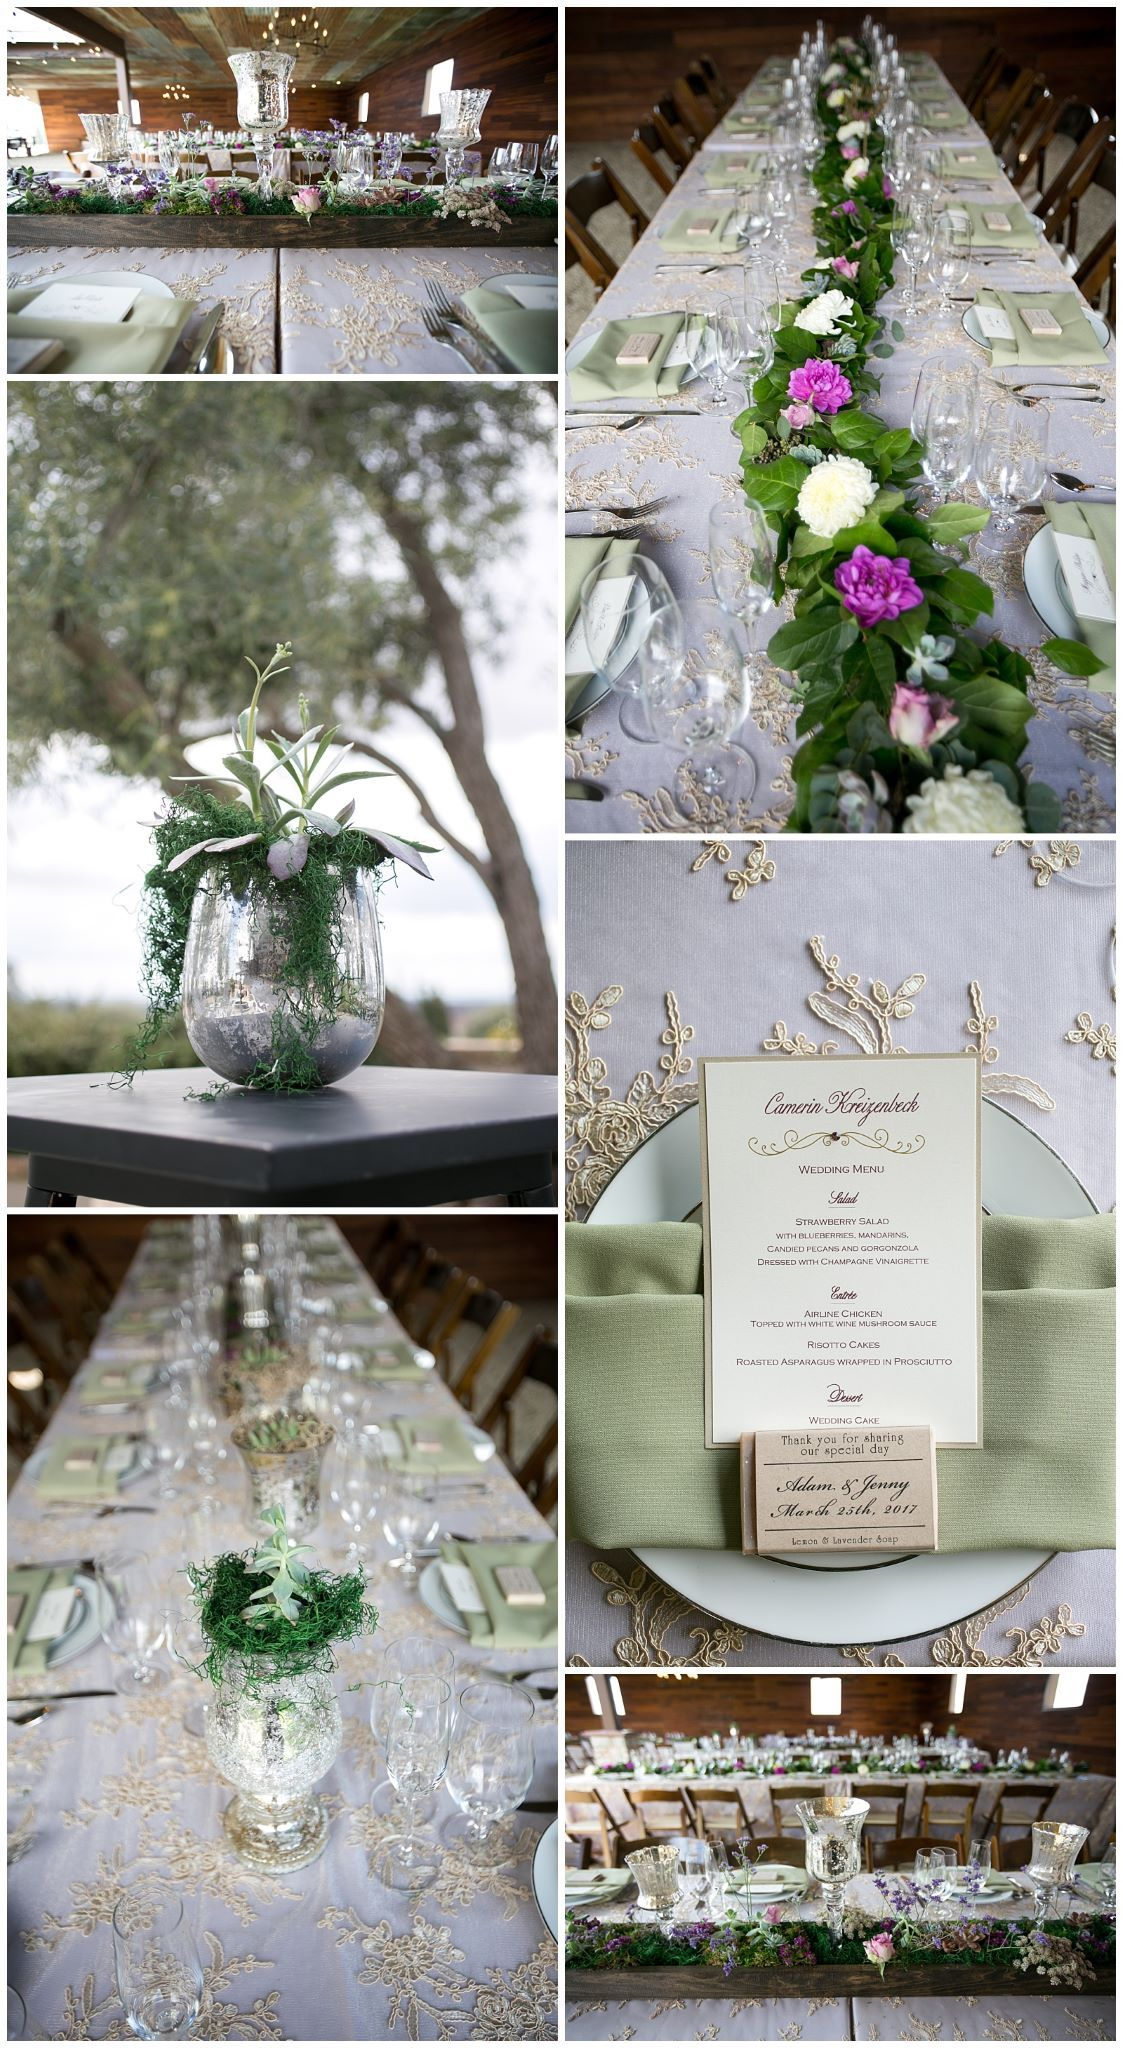 Doughterty-Van De Valk Fairy Godmother Vineyard Wedding